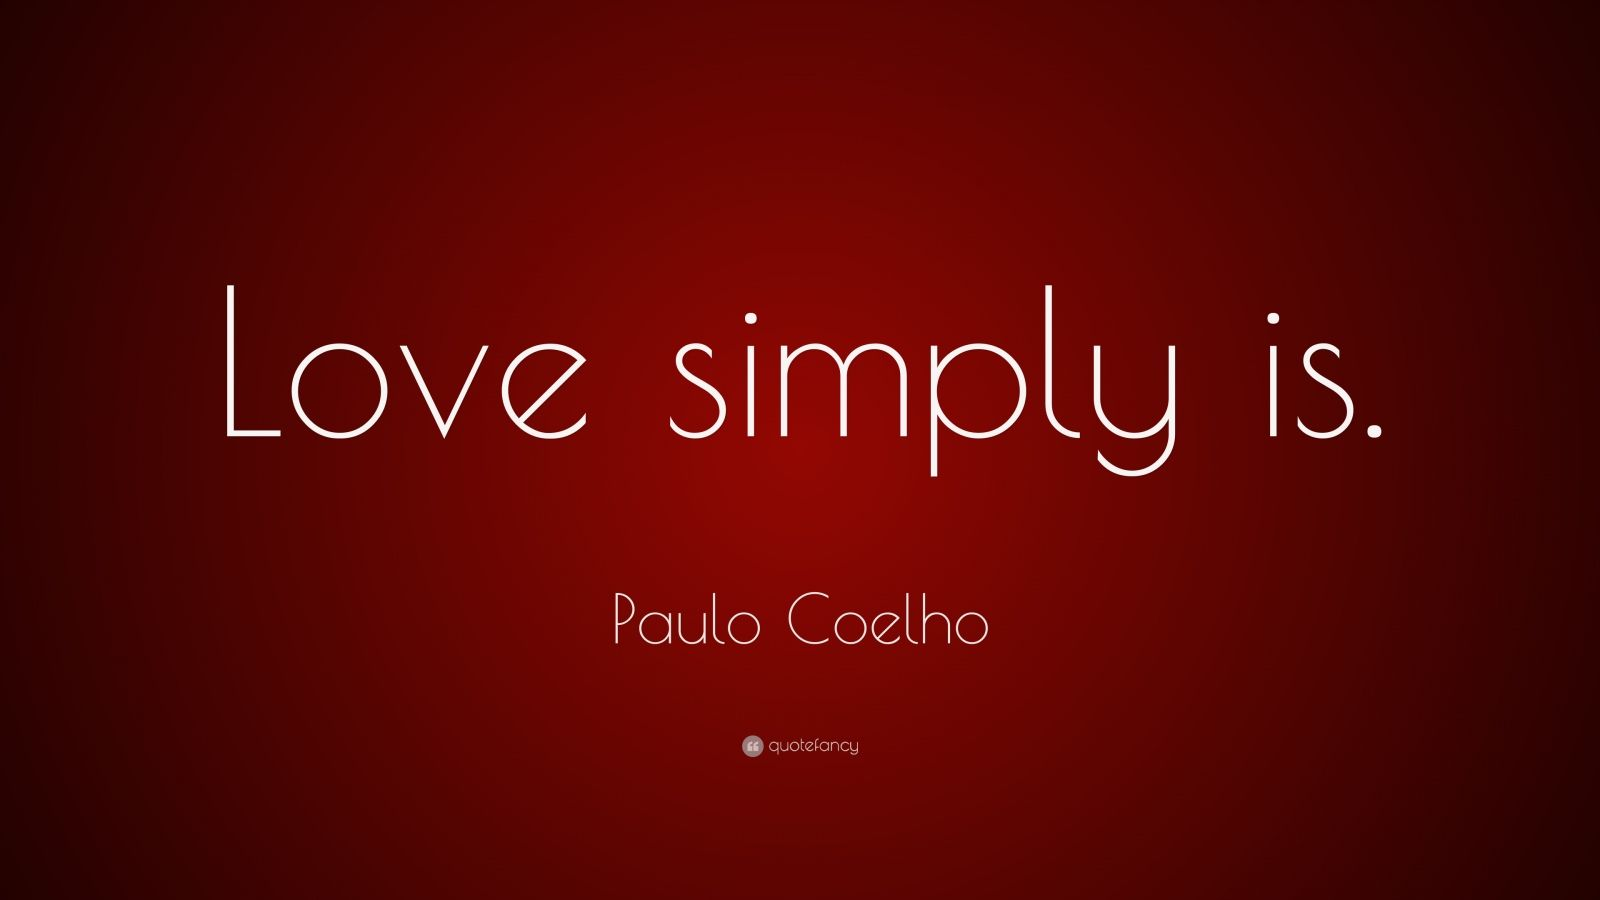 Quotes About Love: Paulo Coelho Quotes (100 Wallpapers)